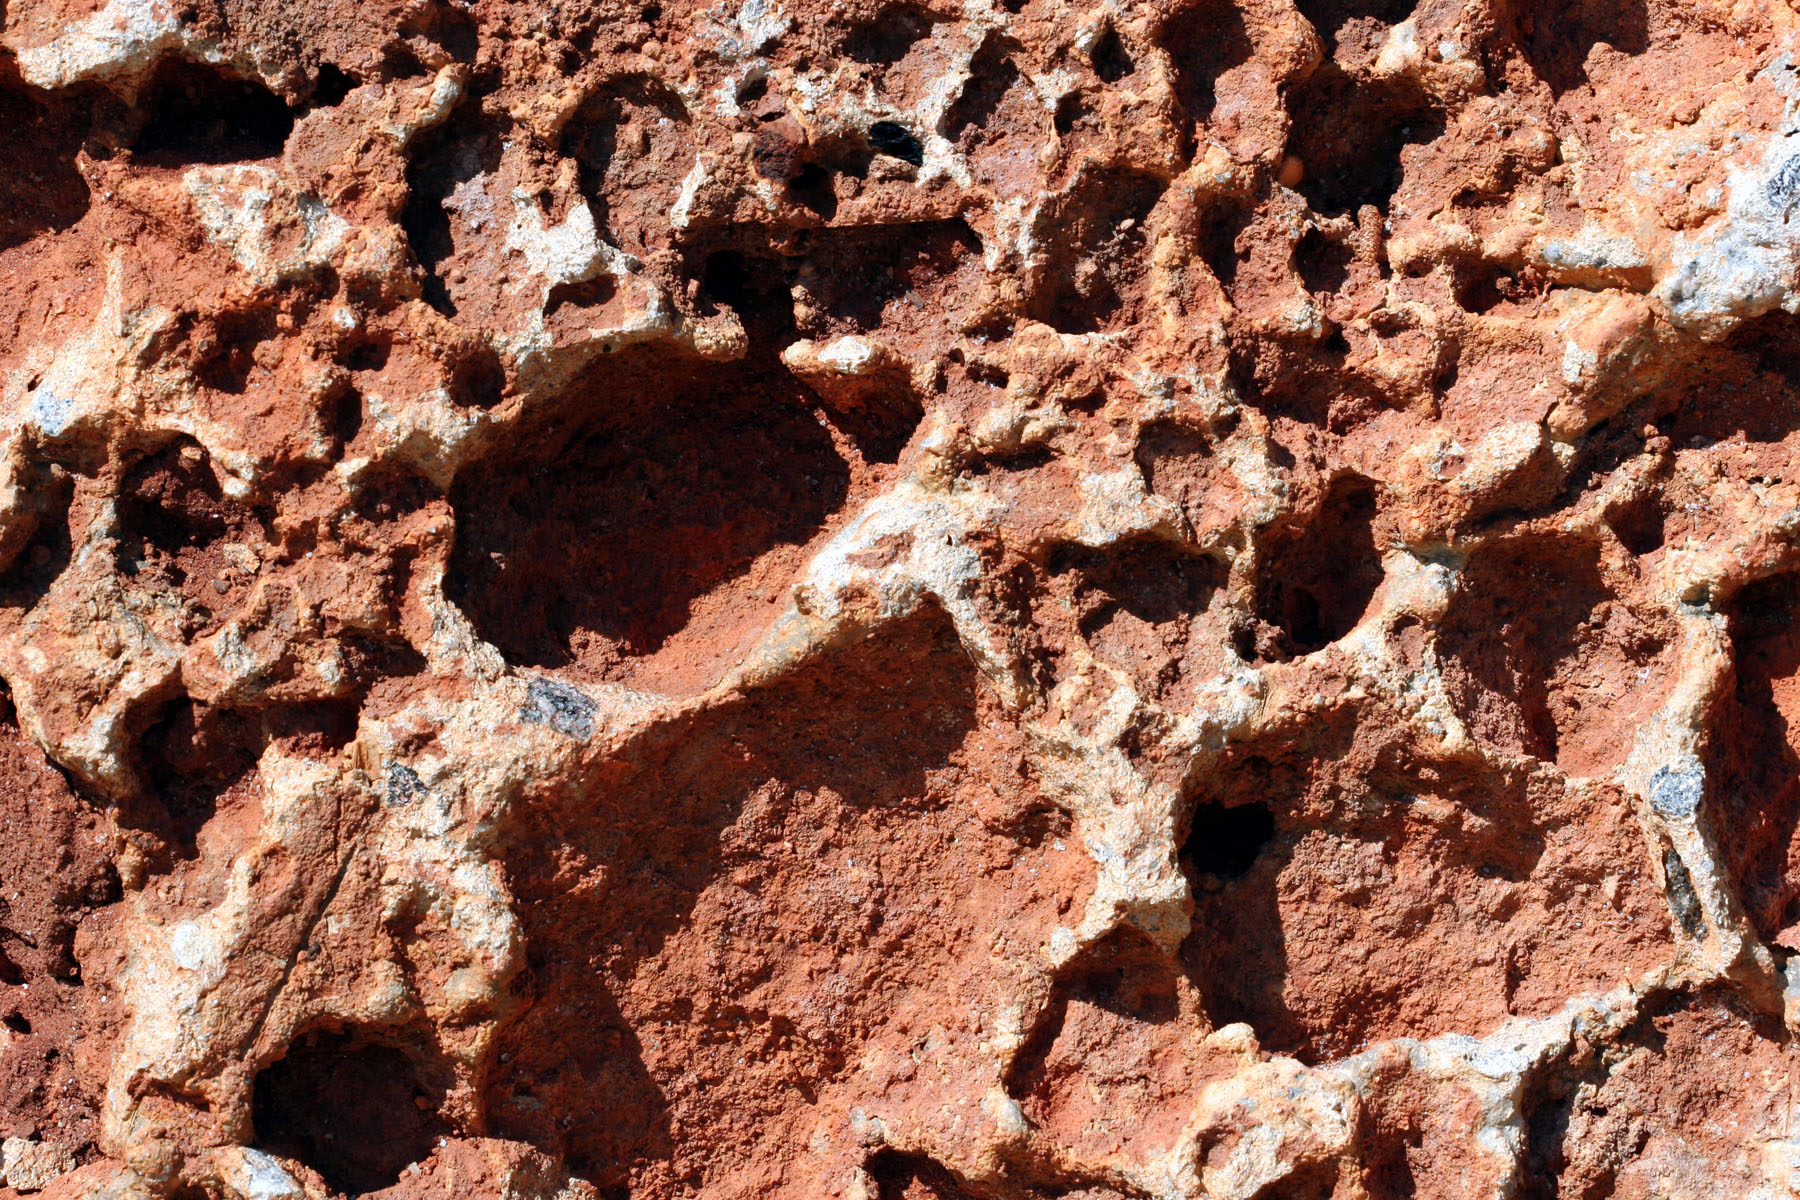 Rough surface, Holes, Red, Rough, Surface, HQ Photo